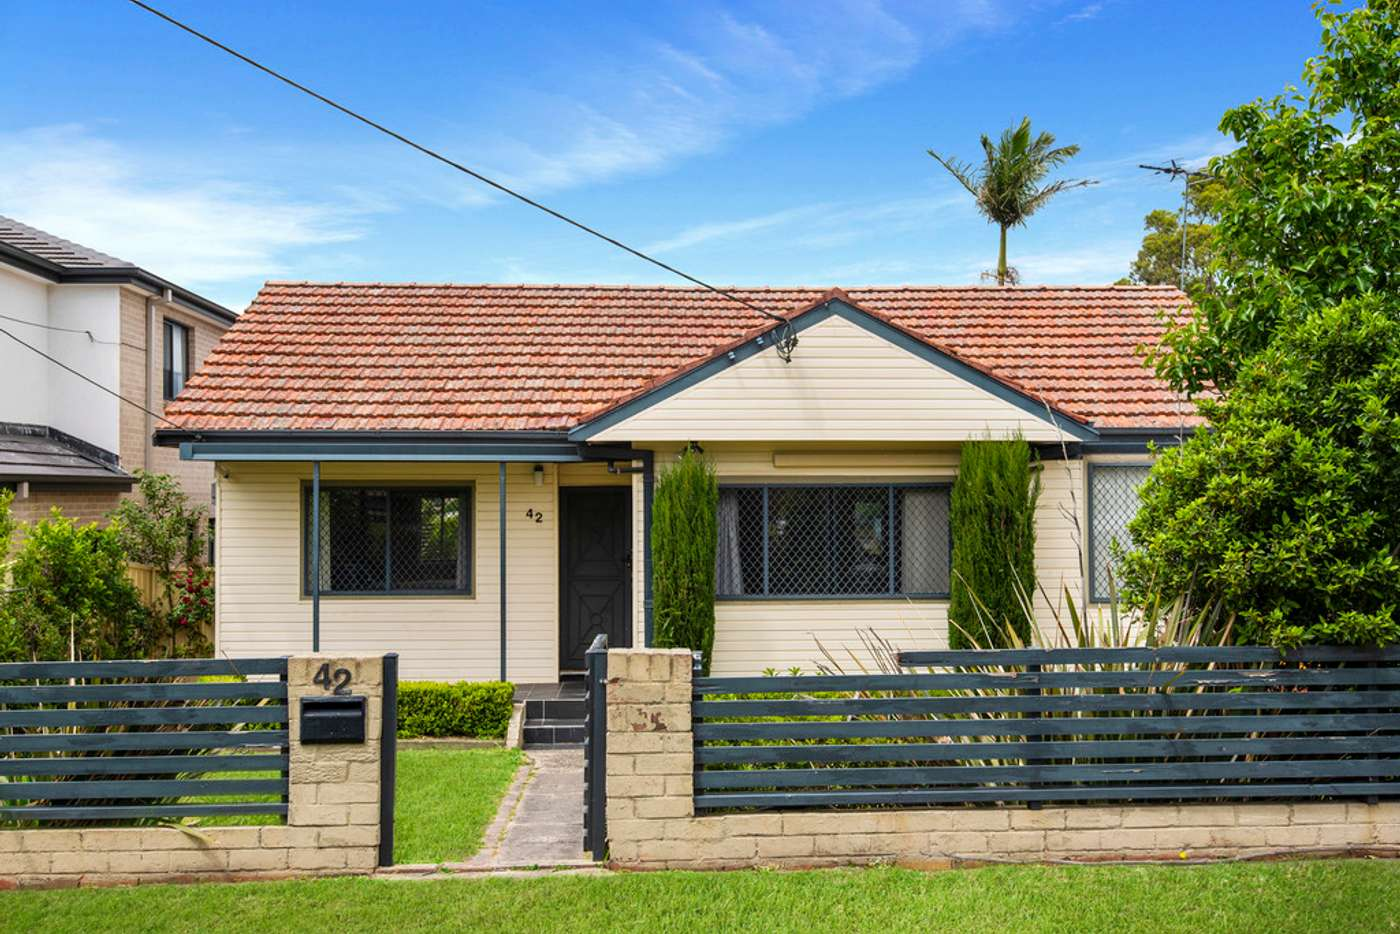 Main view of Homely house listing, 42 Cartwright Avenue, Merrylands NSW 2160